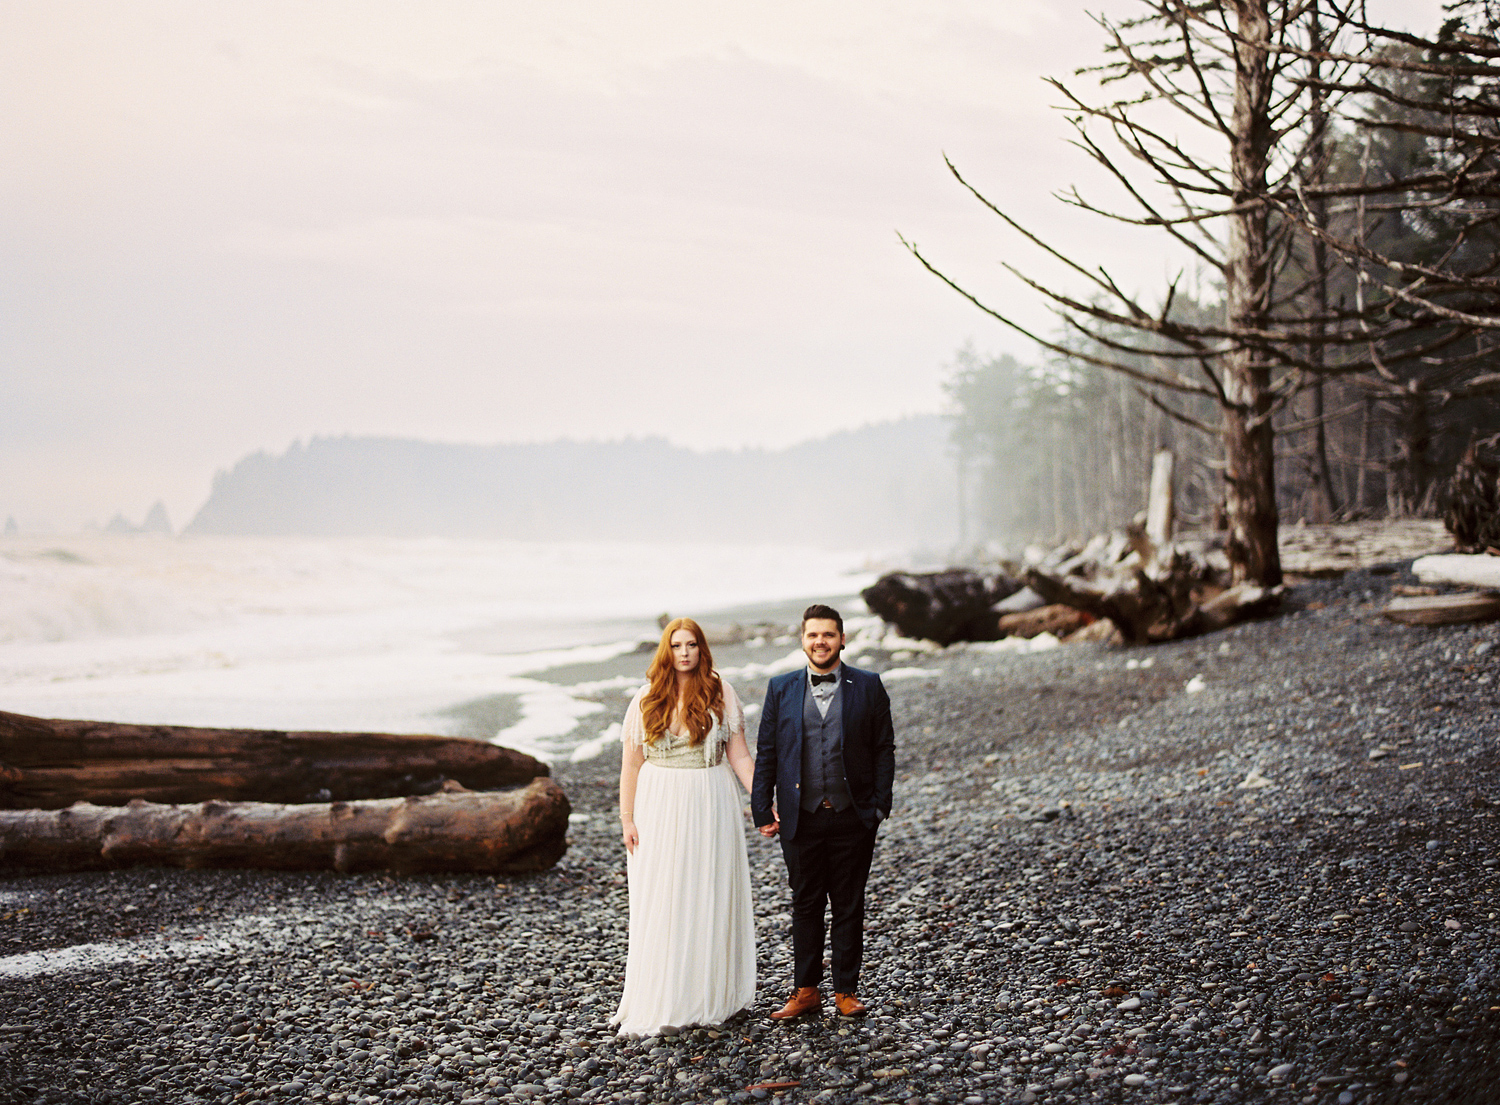 la-push-film-elopement-ryan-flynn-photography-0032.JPG